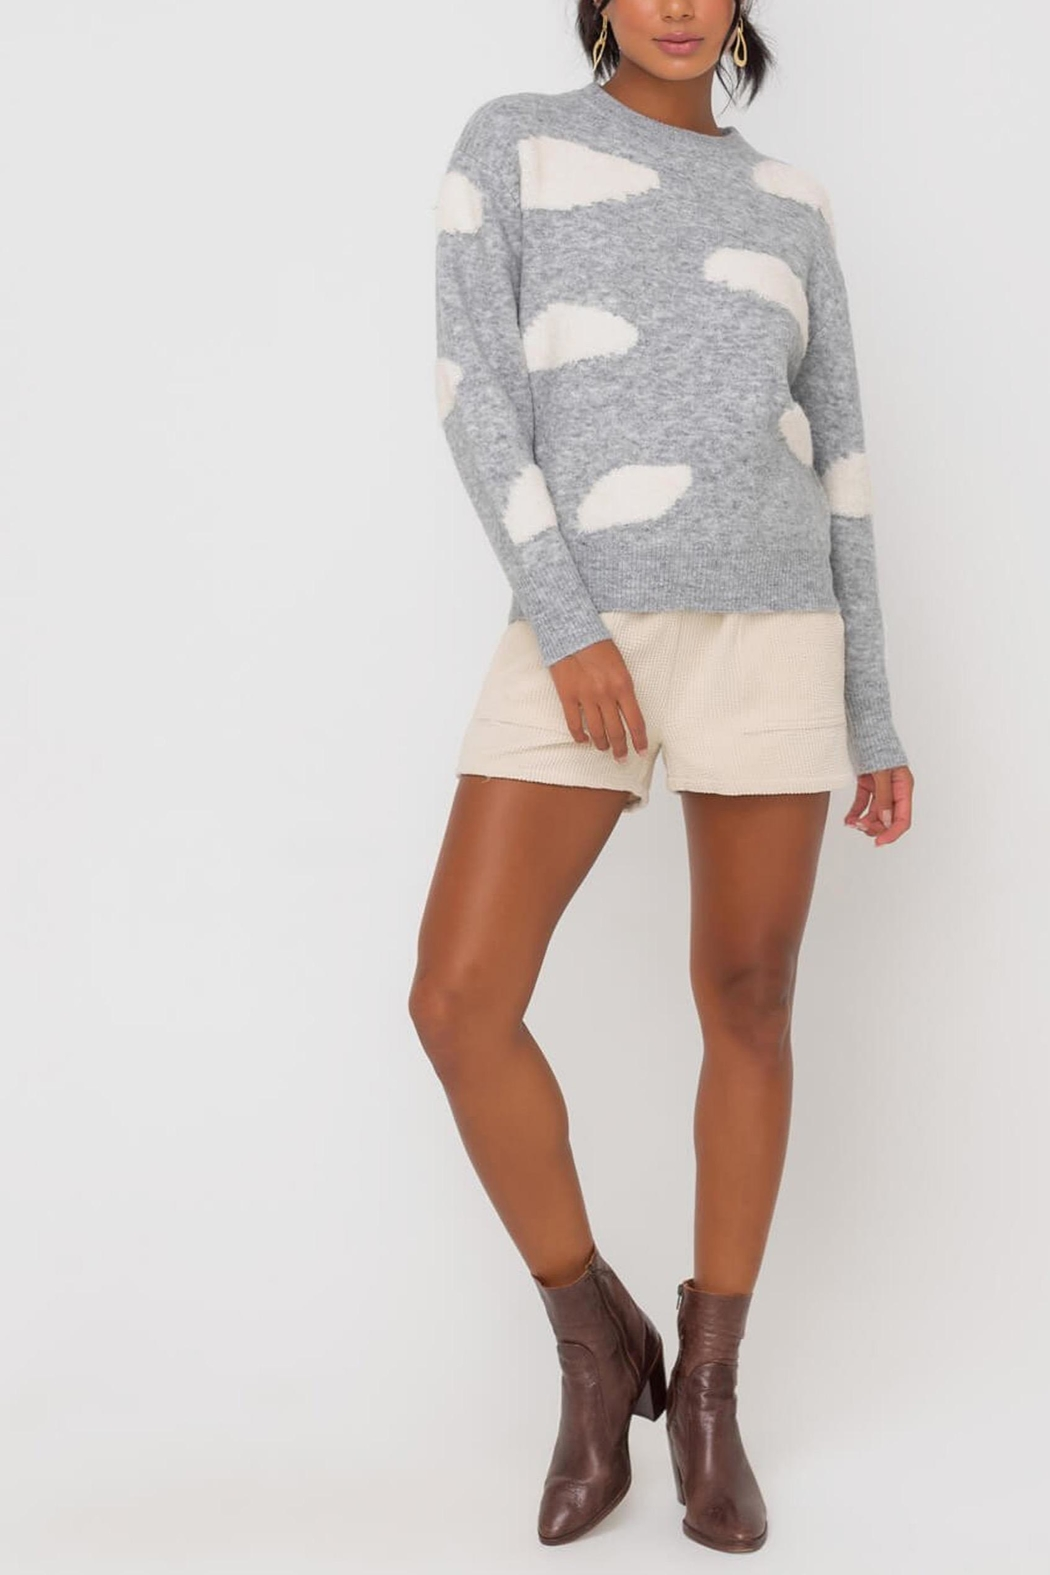 Lush Clothing  Cloud Print Sweater - Side Cropped Image